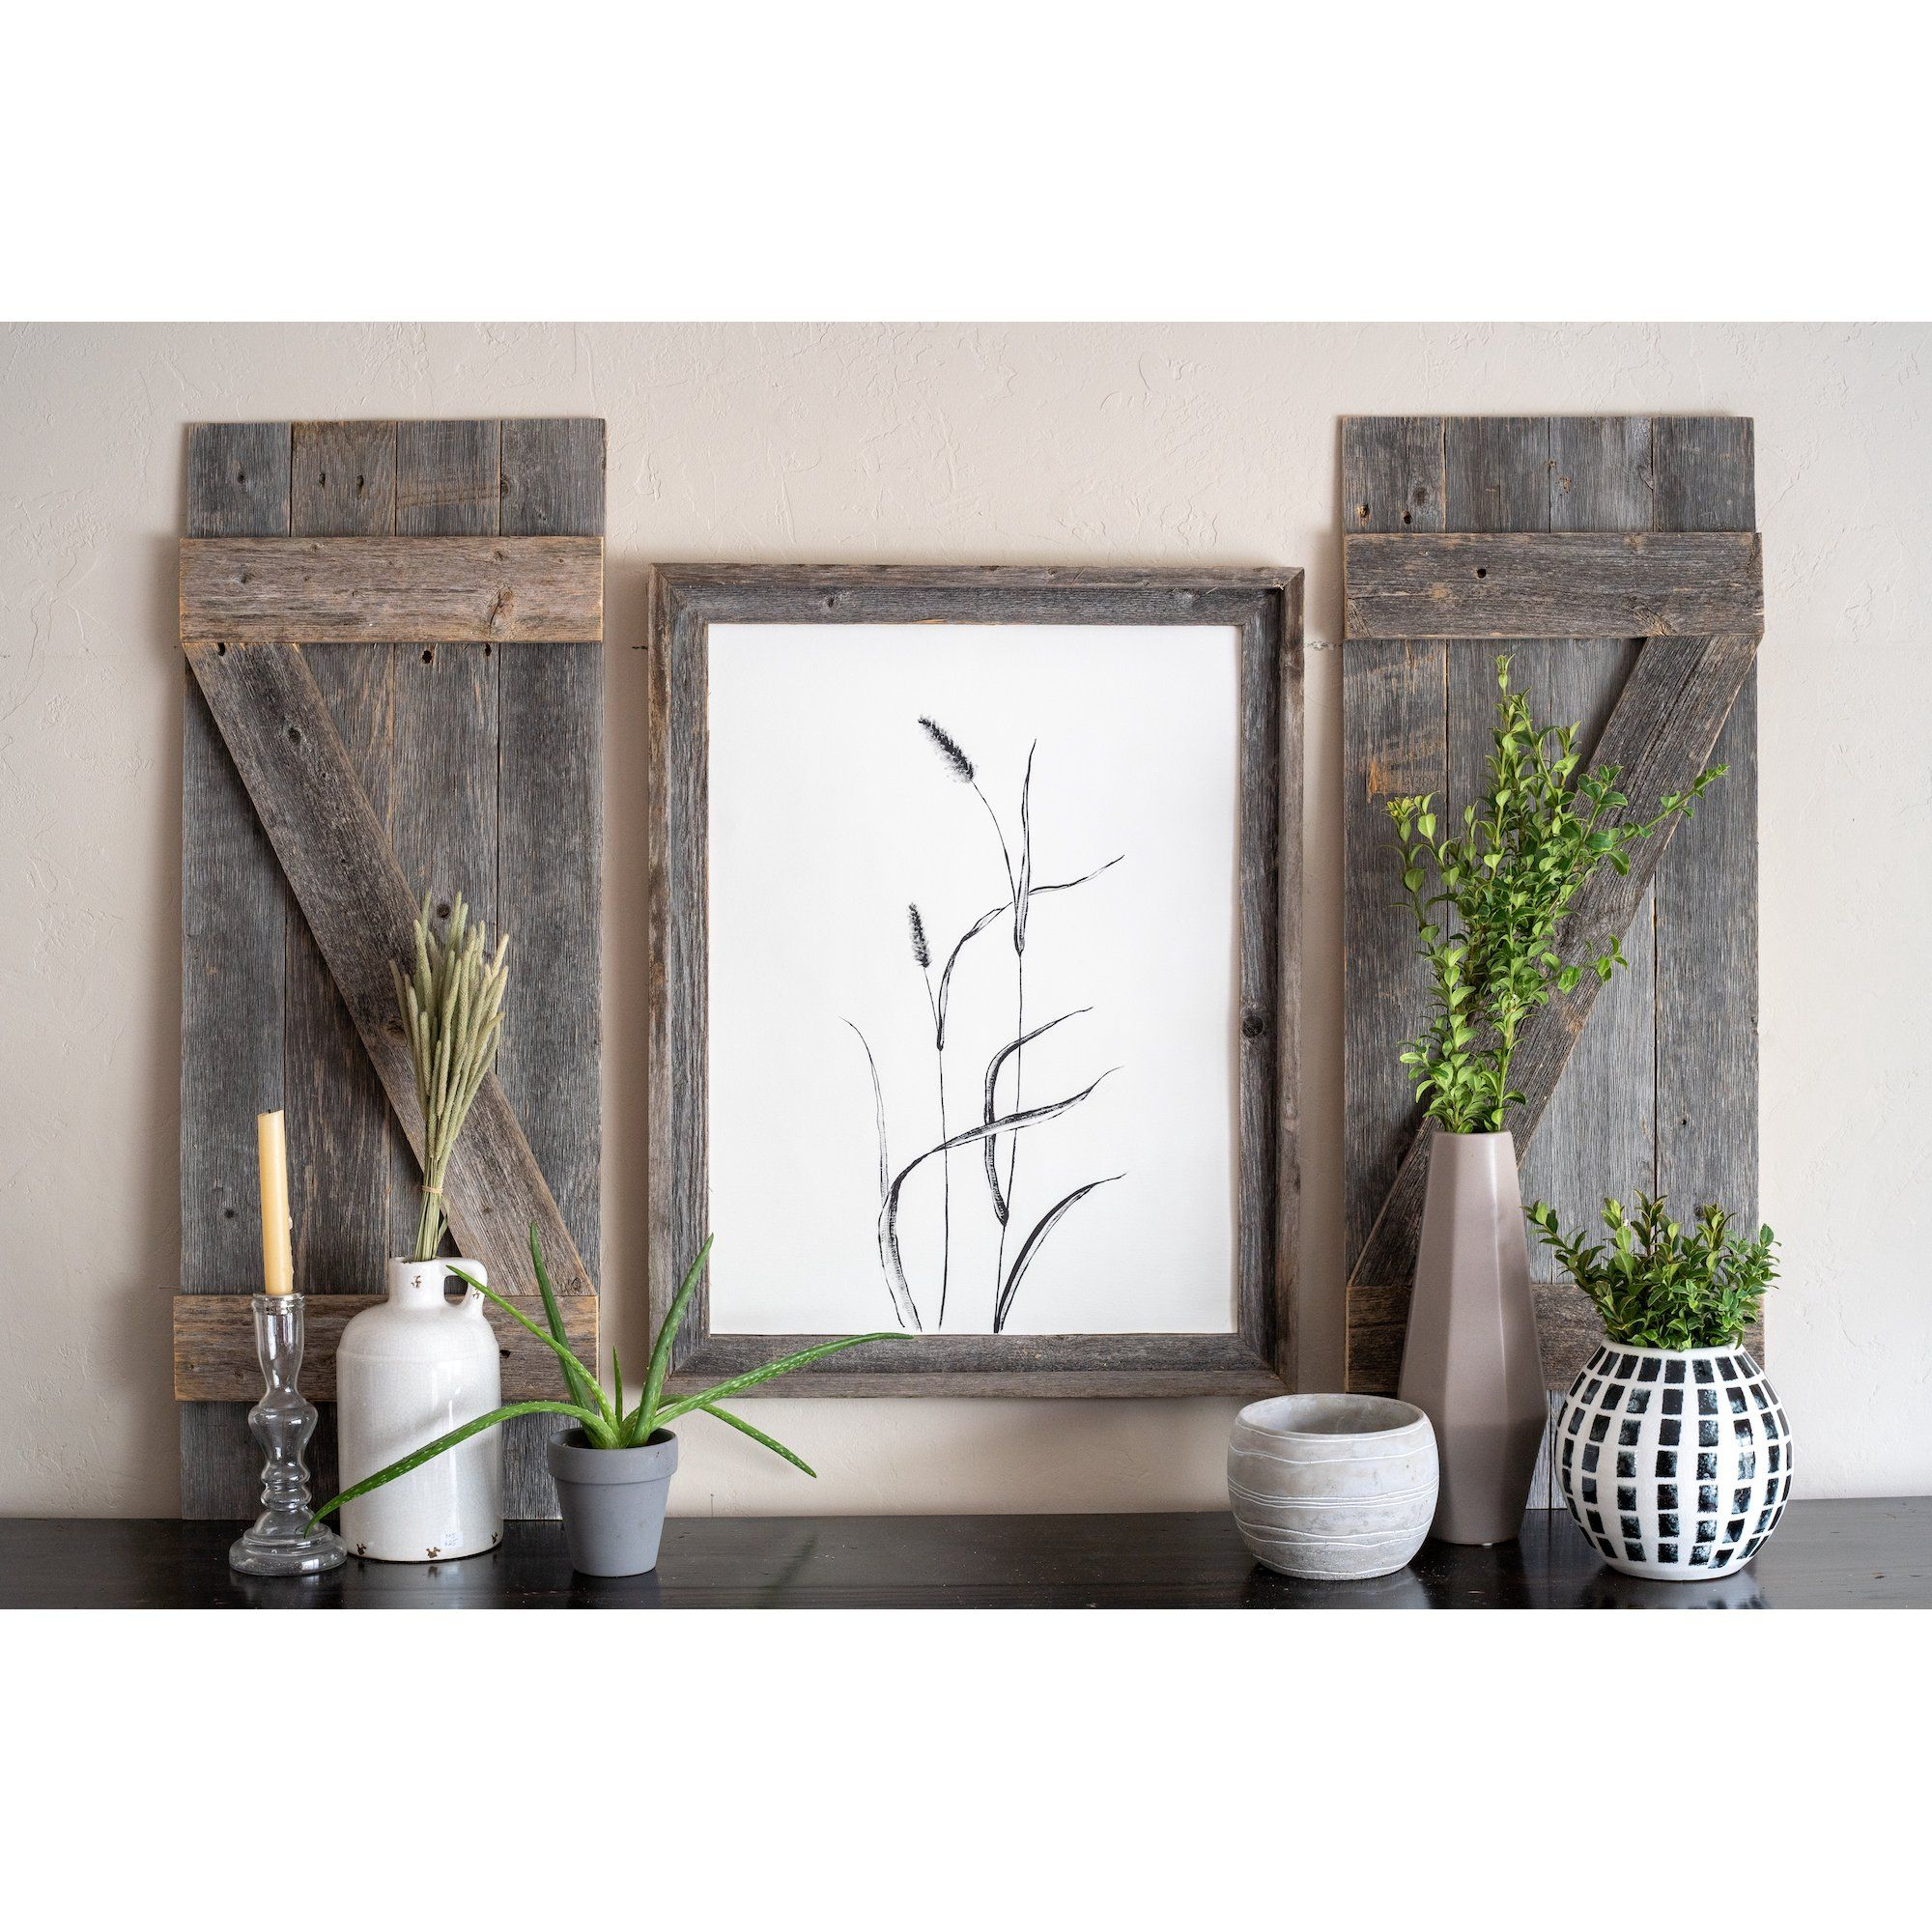 Barnwoodusa Rustic Farmhouse Window Shutters Set Of 2 Made Of 100 Reclaimed And Recycled Wood Rustic Interior Window Shutters Traditional Country Sty In 2020 Decor Rustic Interior Shutters Barn Wood Walls Living Room